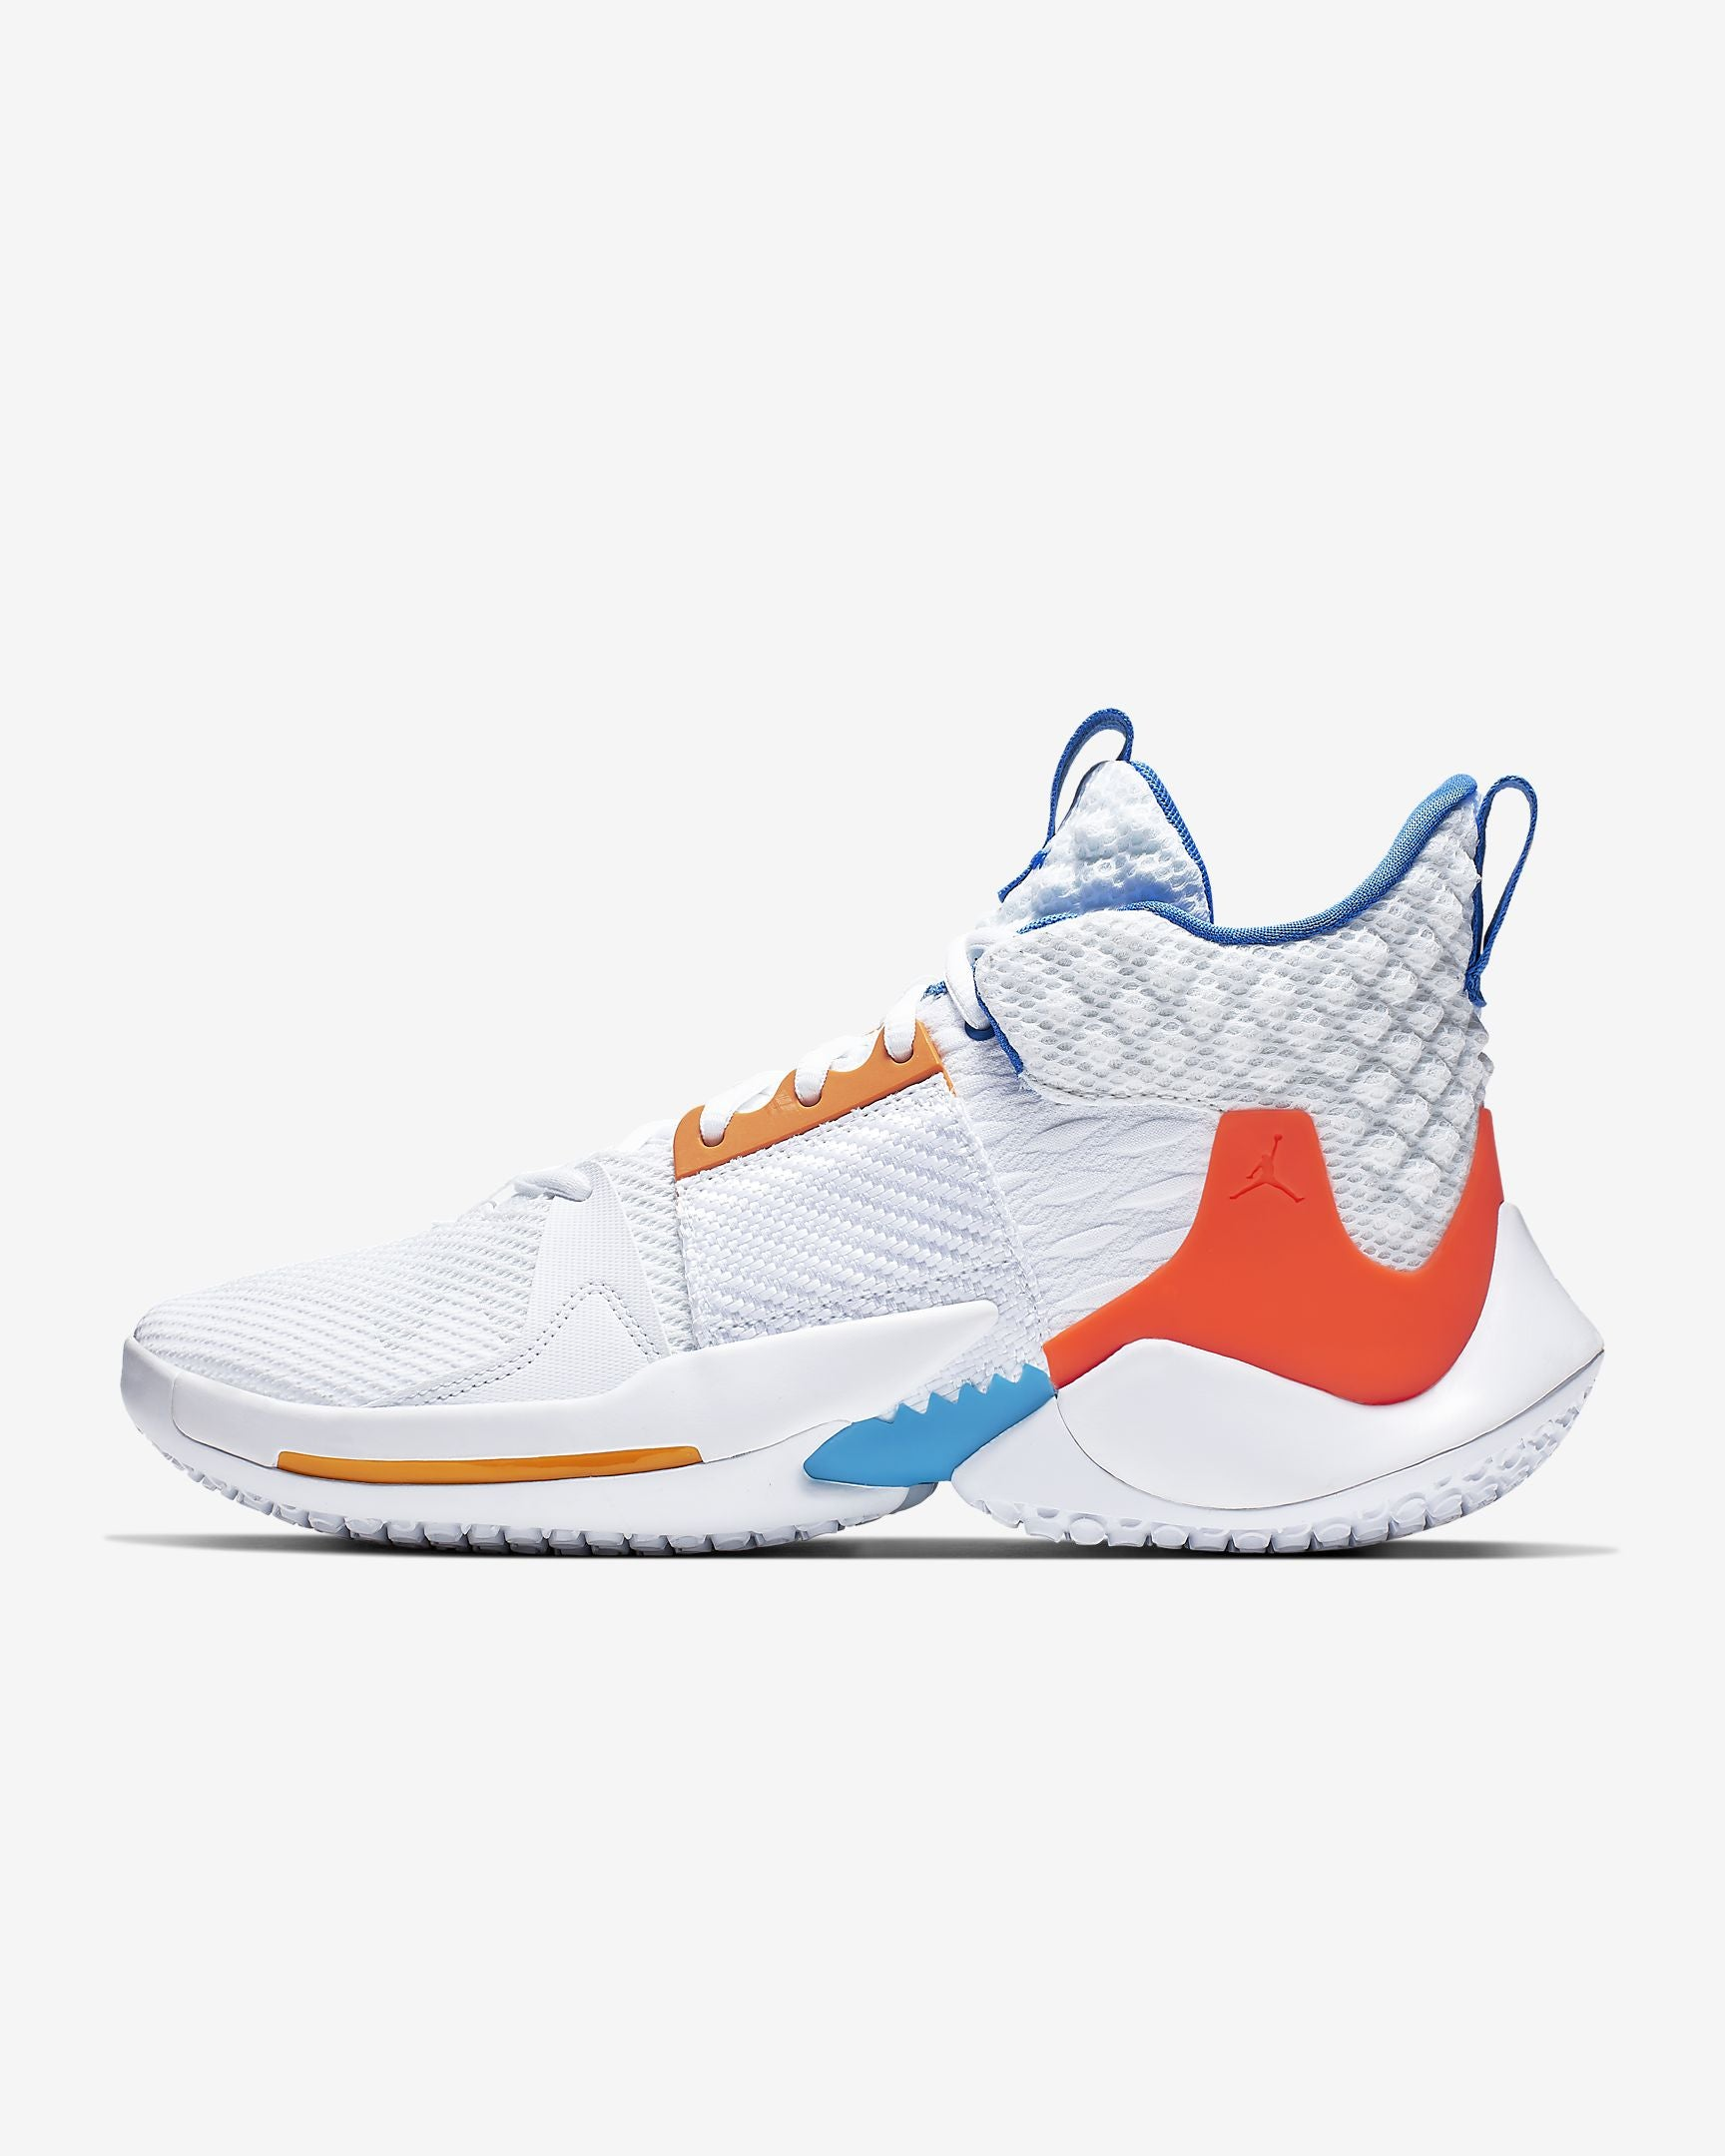 Nike Jordan Why Not Zer0.2 Basketball Boot/Shoe NK-AO6219-100